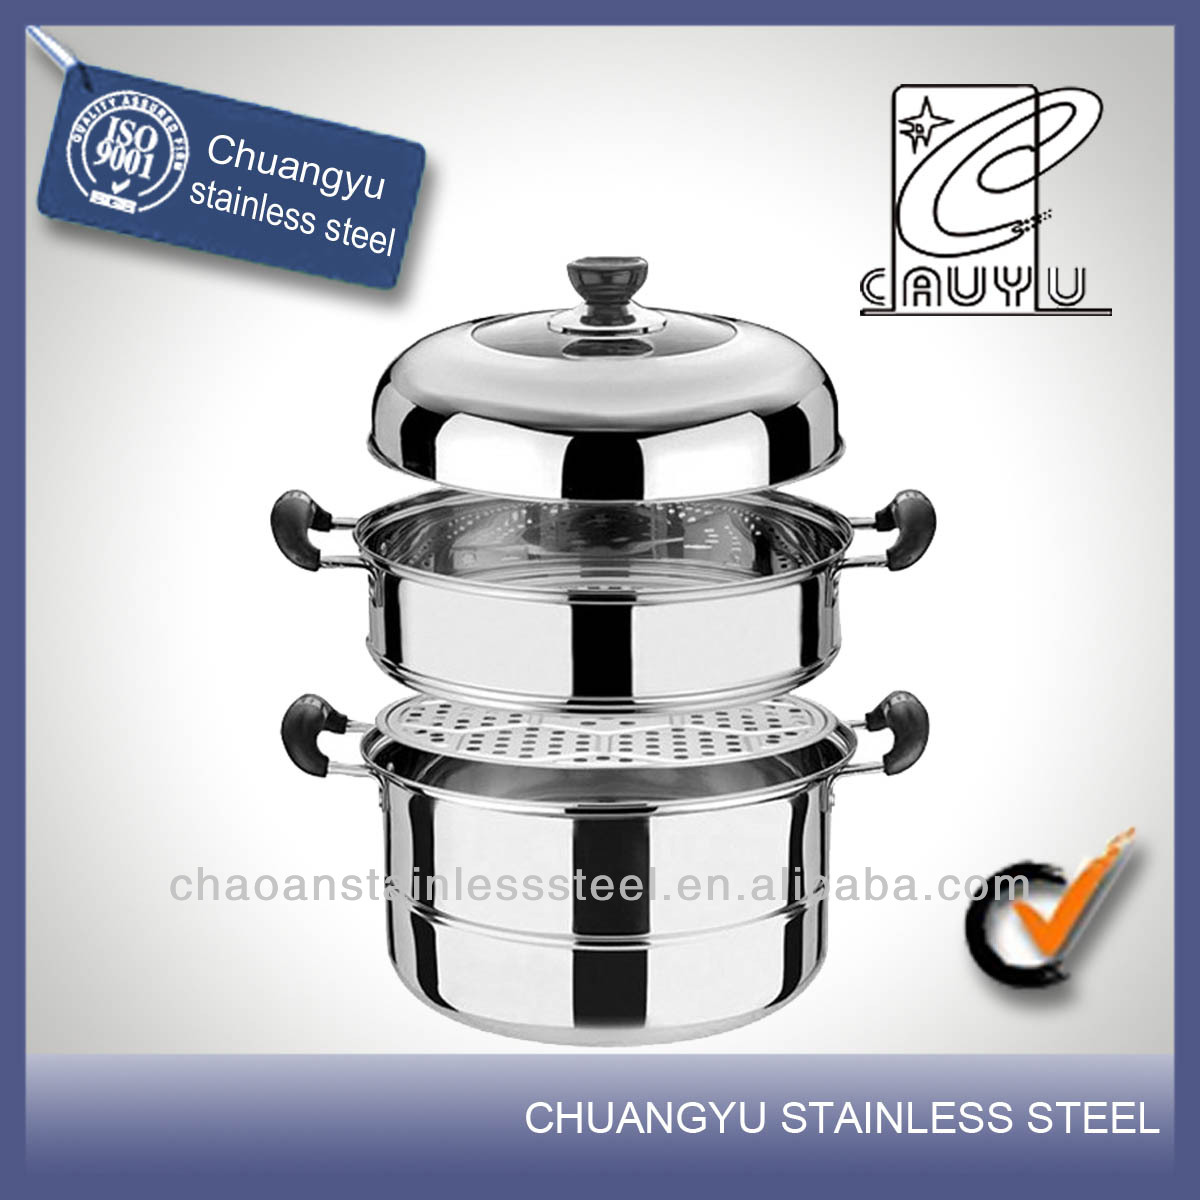 Stainless steel high quality new age travel steamer on sale